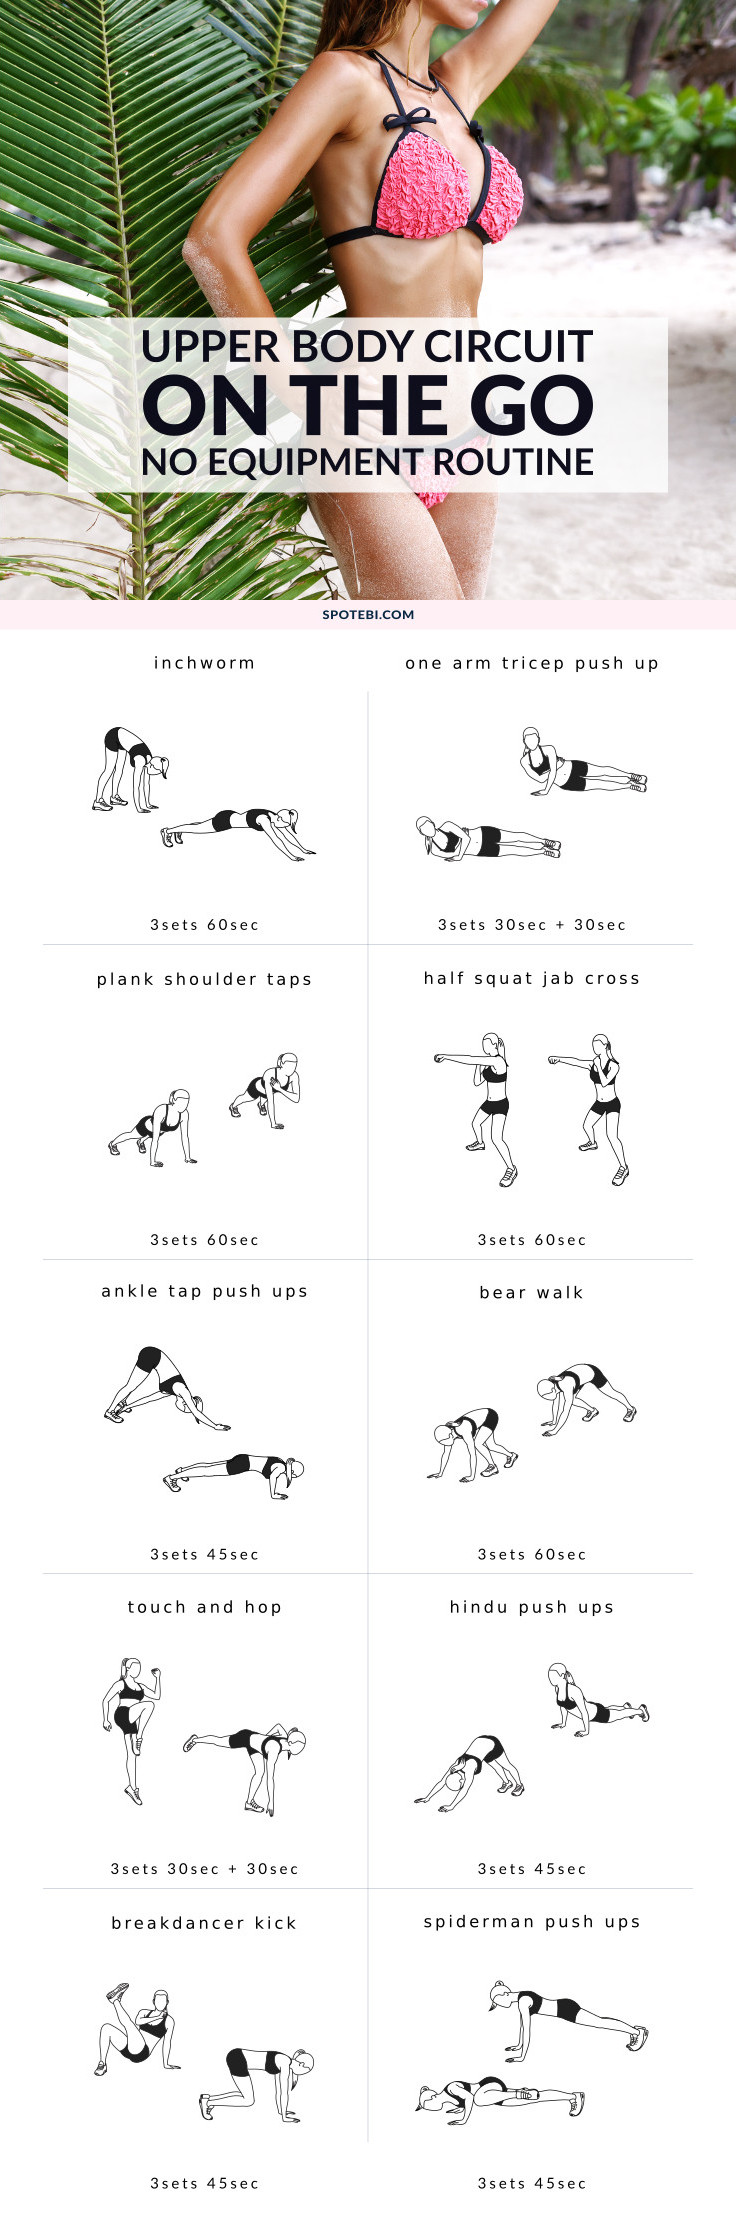 Upper Body Bodyweight Exercises